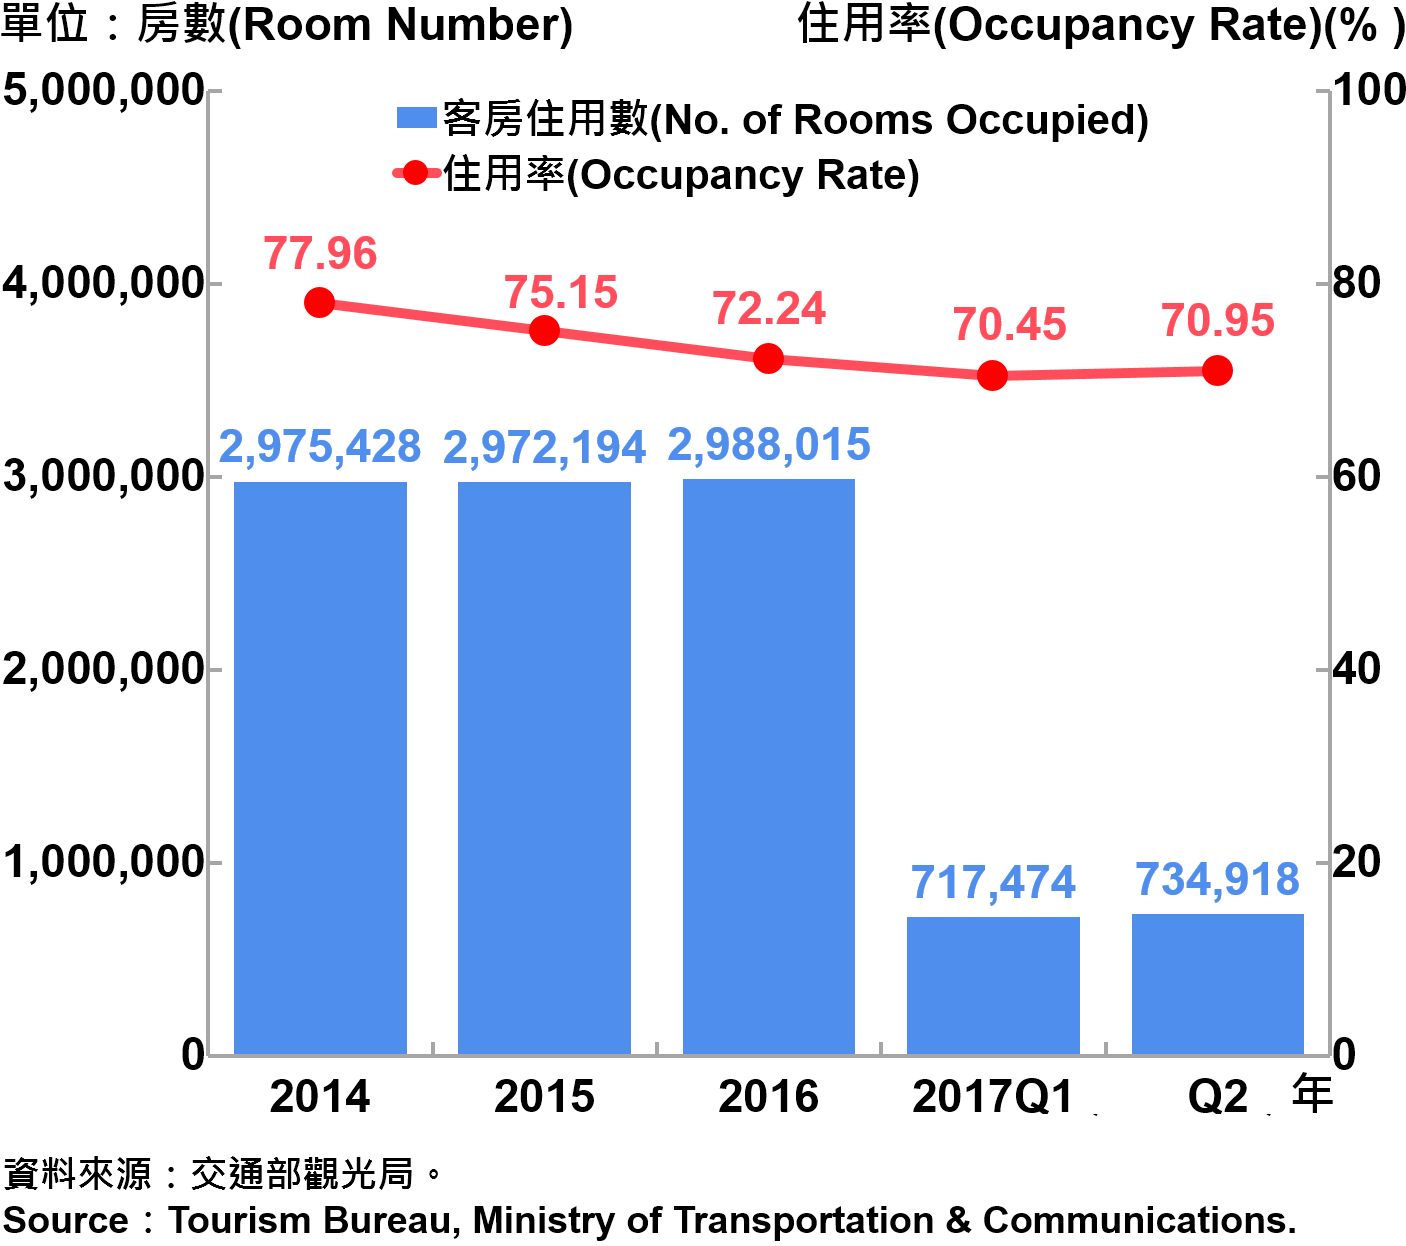 圖11、臺北市觀光旅館客房住用率統計—2017Q2 Occupancy Rate on Tourist Hotel Operations in Taipei City—2017Q2